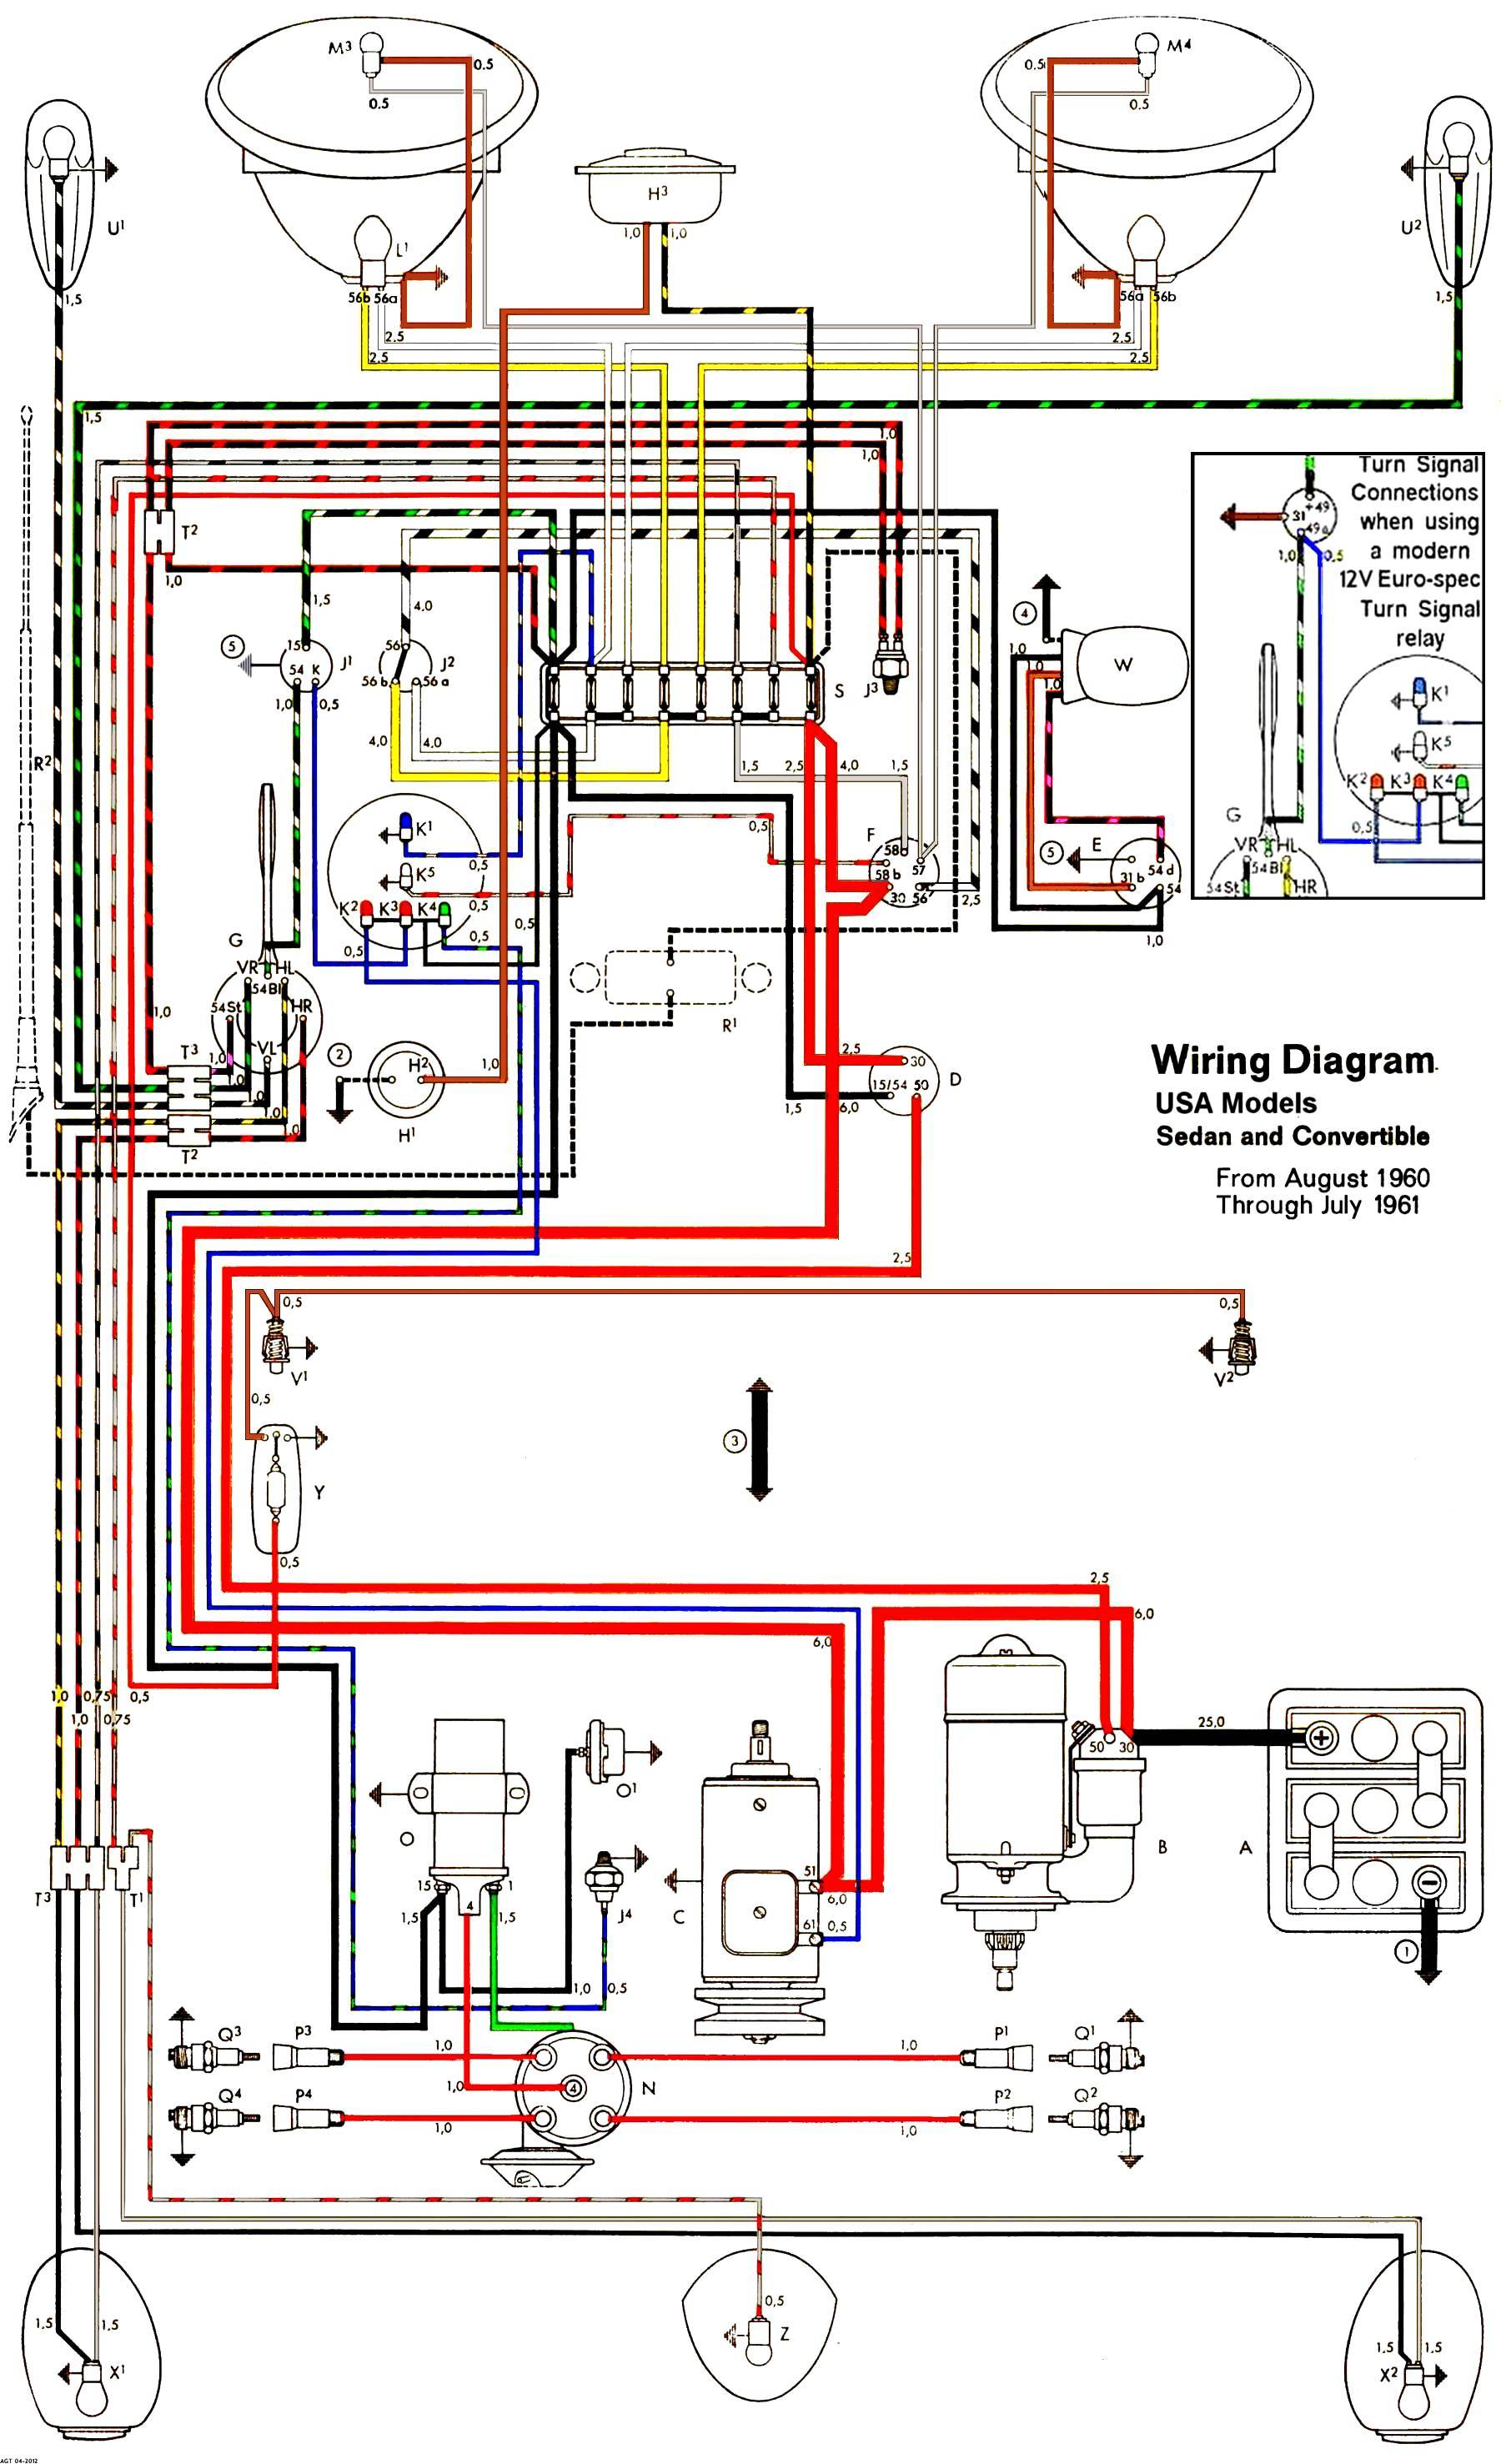 74 Super Beetle Wiring Diagram Simple 1993 Vw Thesamba Com Type 1 Diagrams Front End